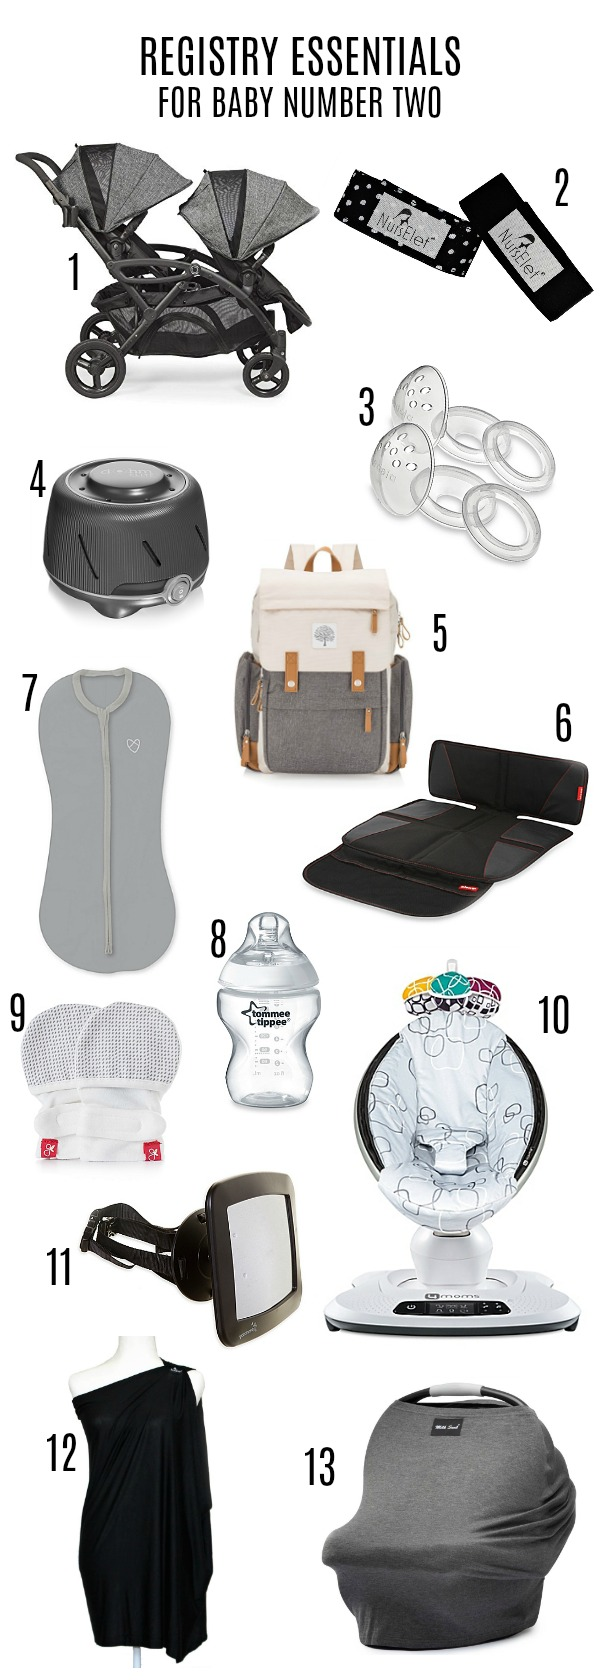 Baby registry essentials for baby number two